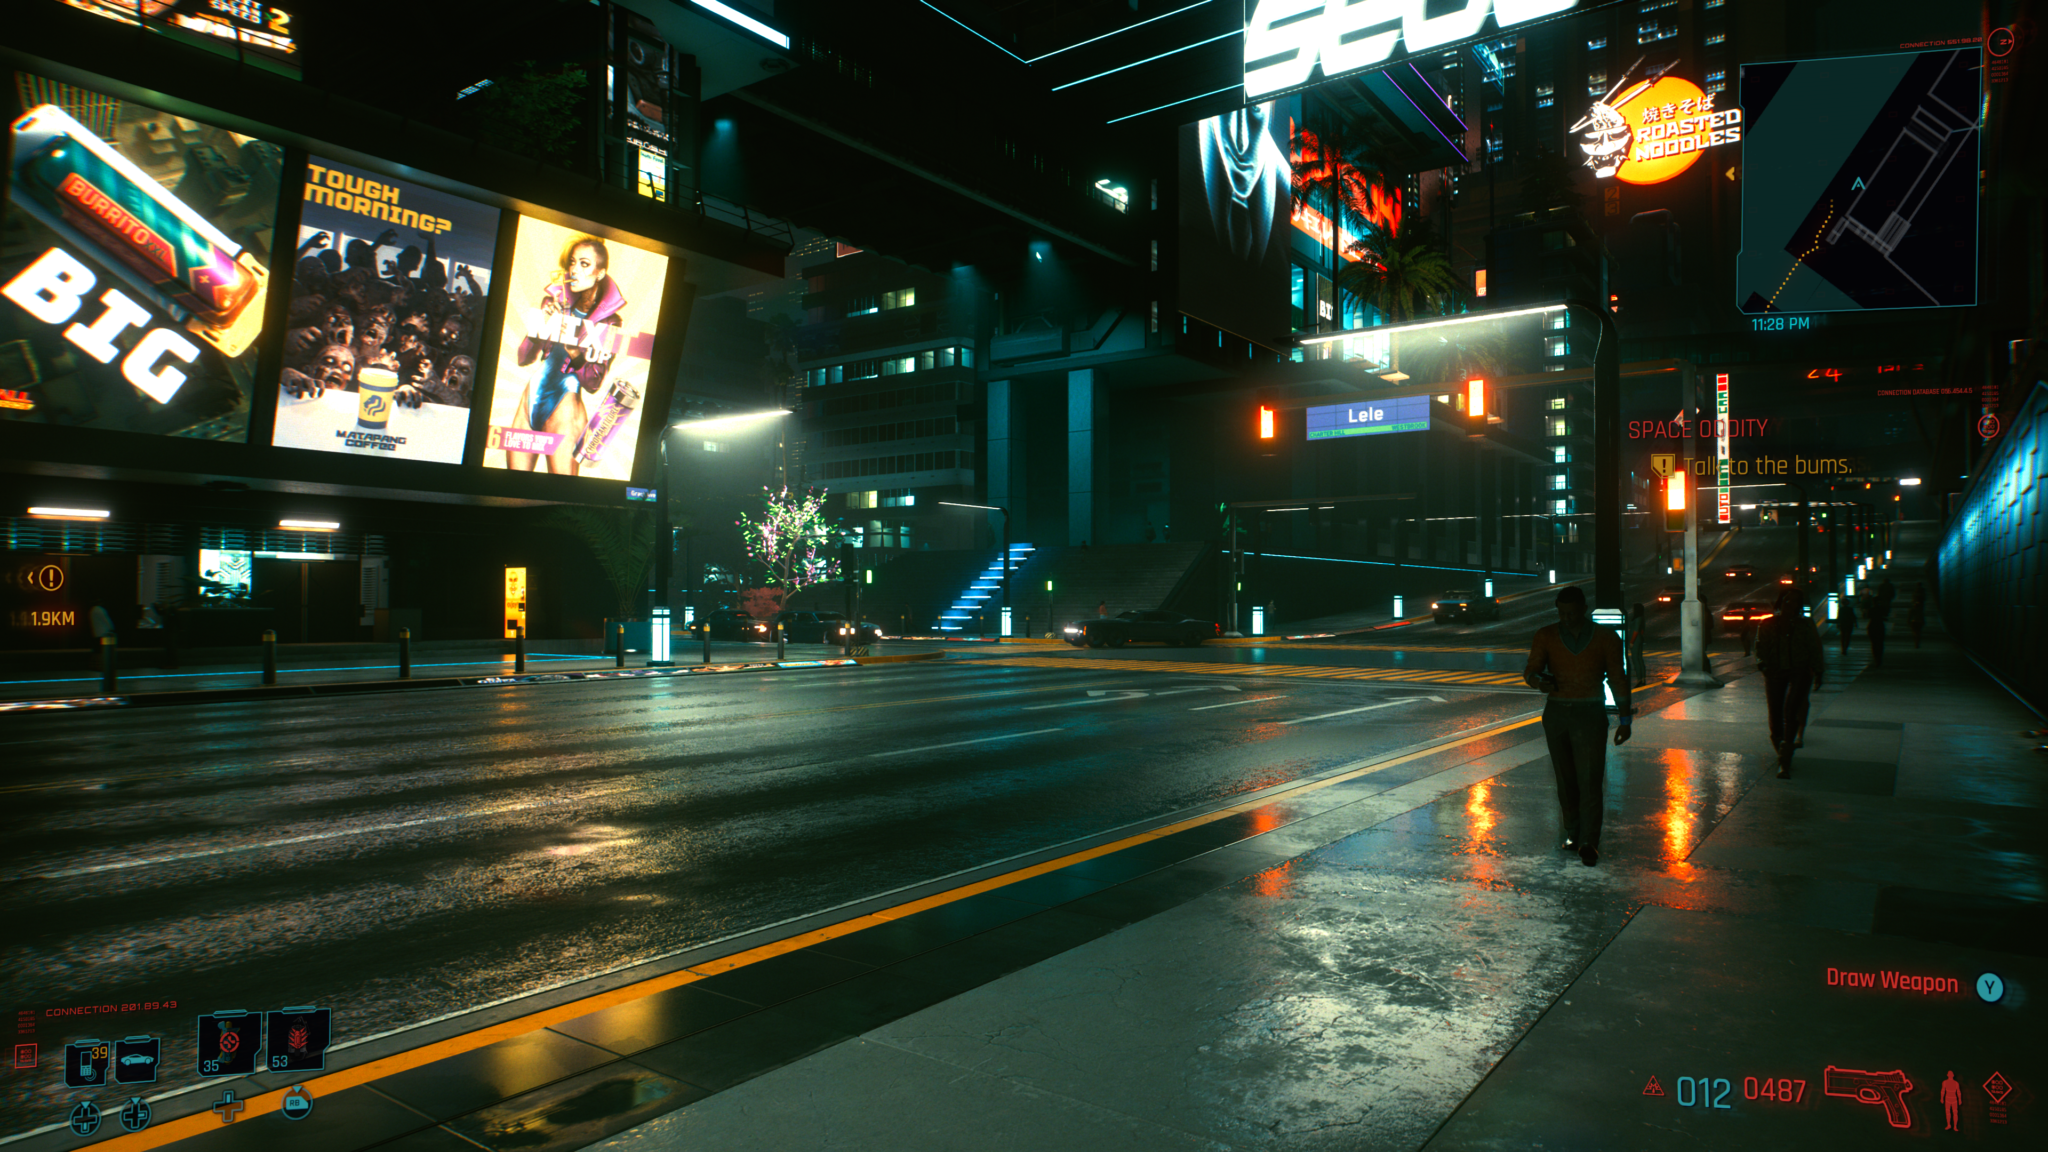 Cyberpunk 2077 (C) 2020 by CD Projekt RED RTX OFF Screen Space Reflections